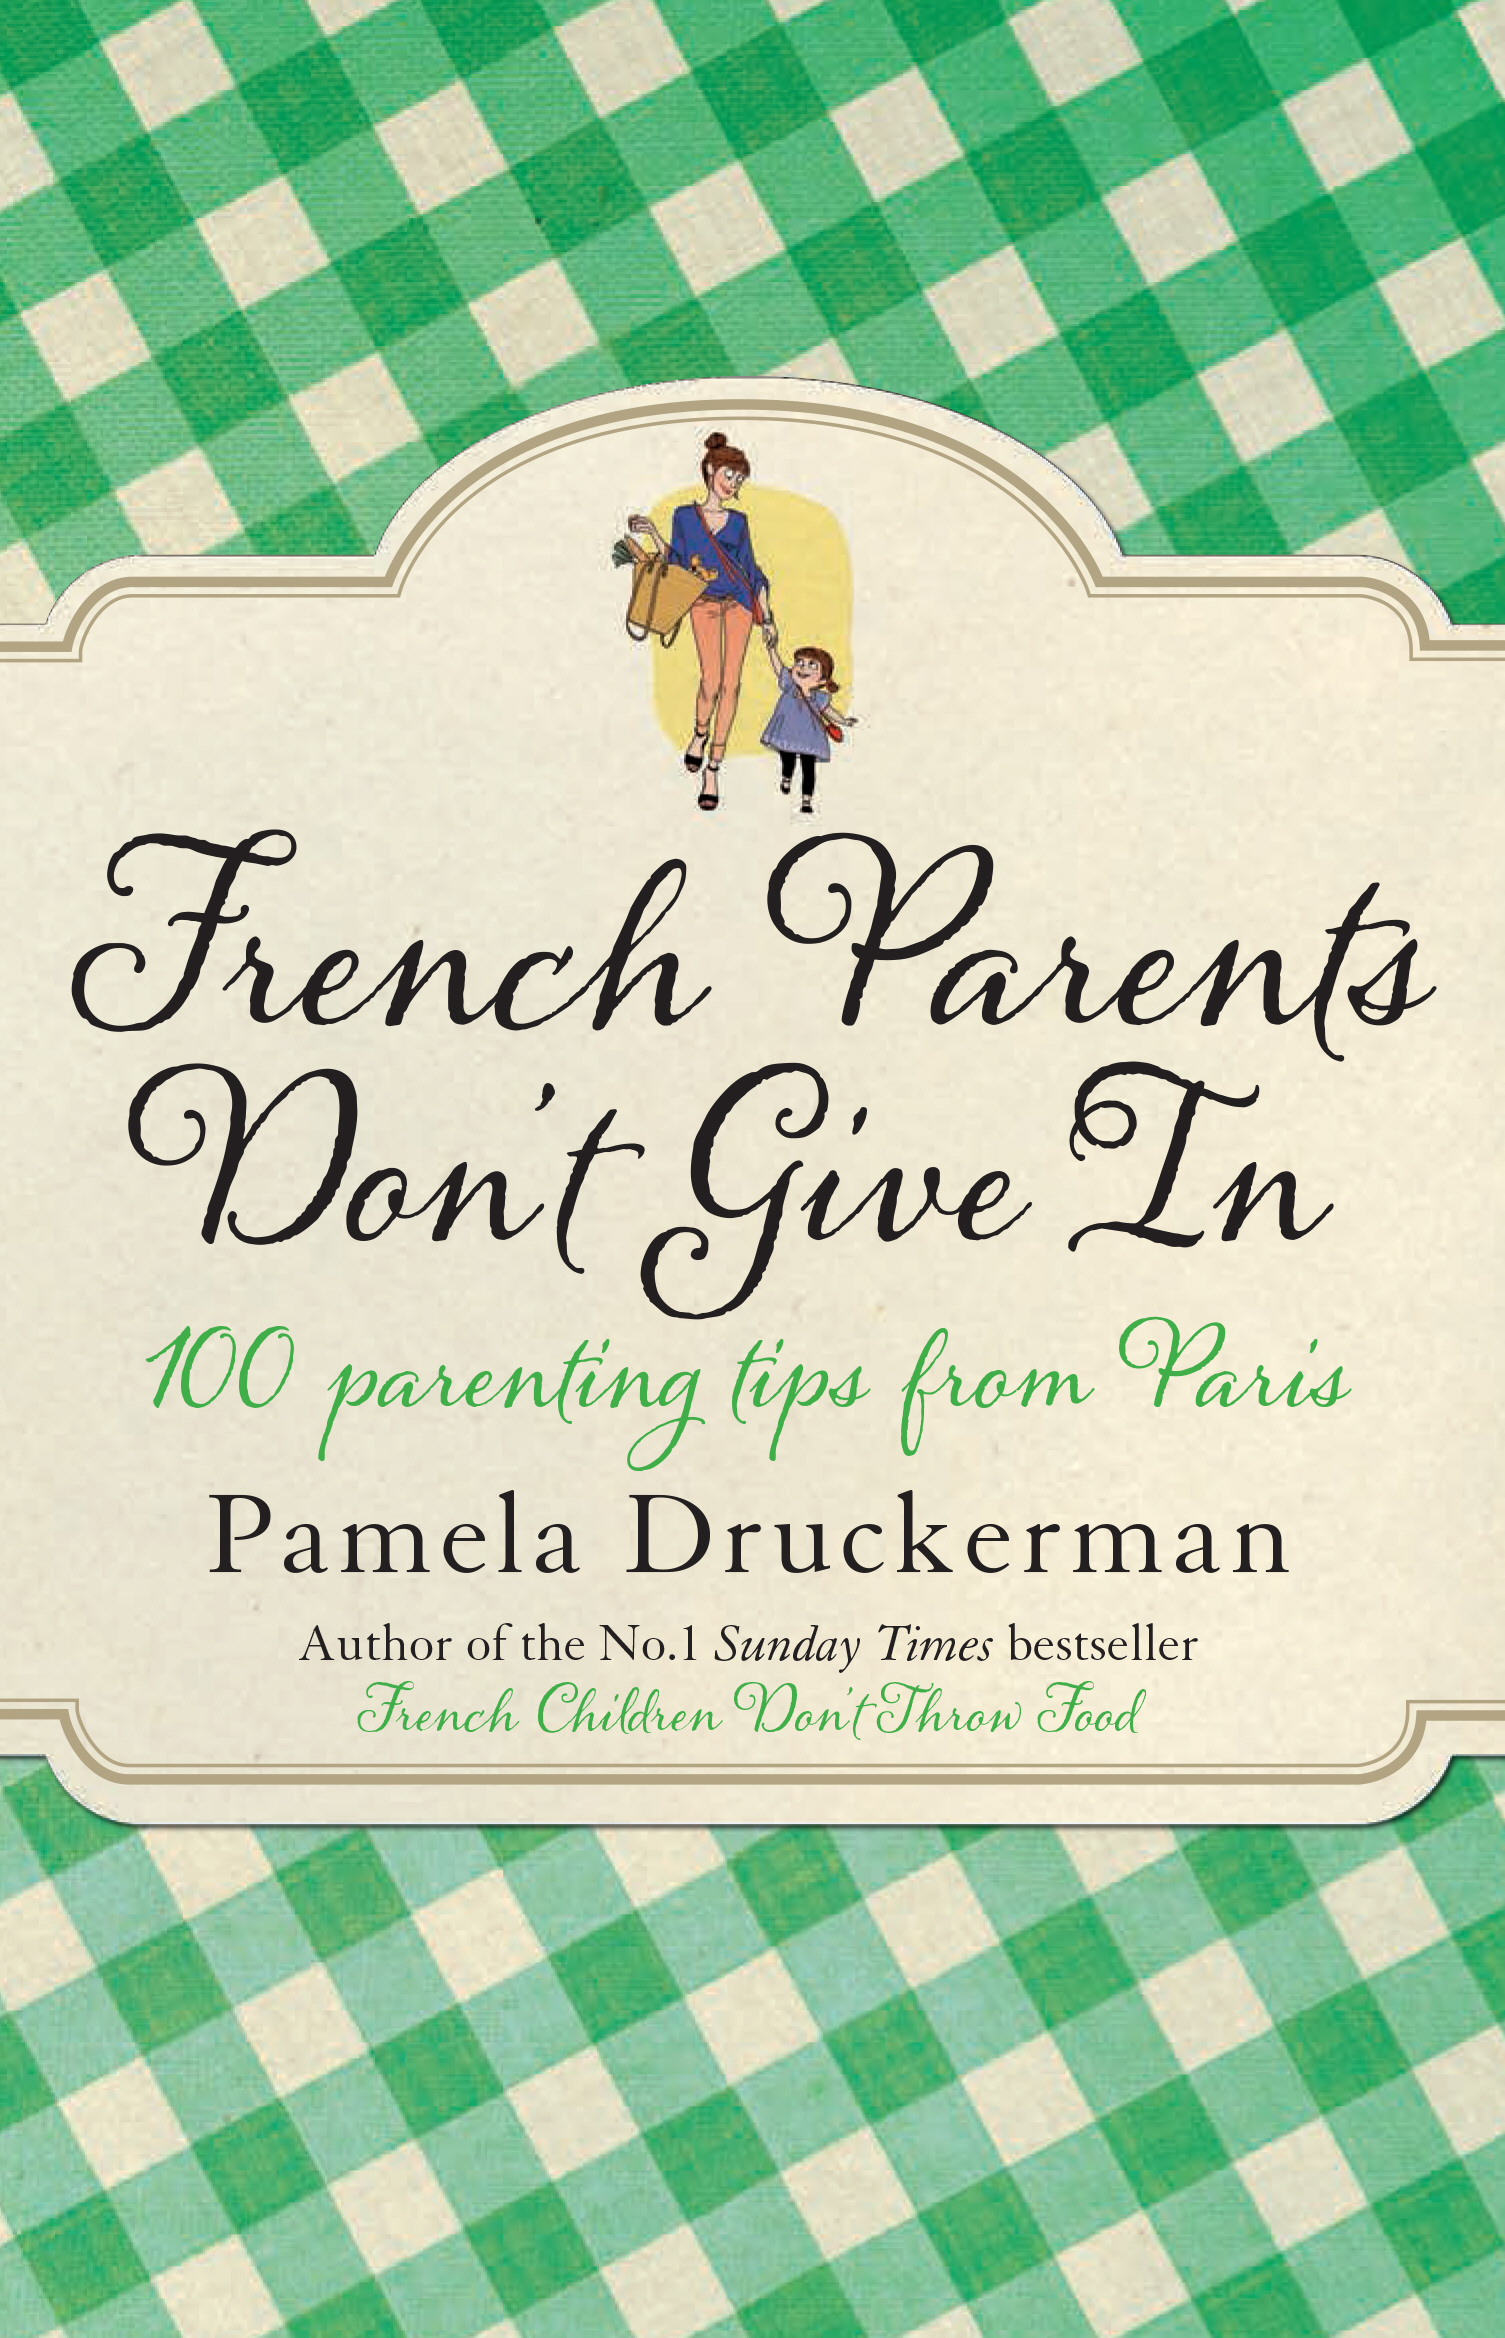 French Parents Don't Give In 100 parenting tips from Paris